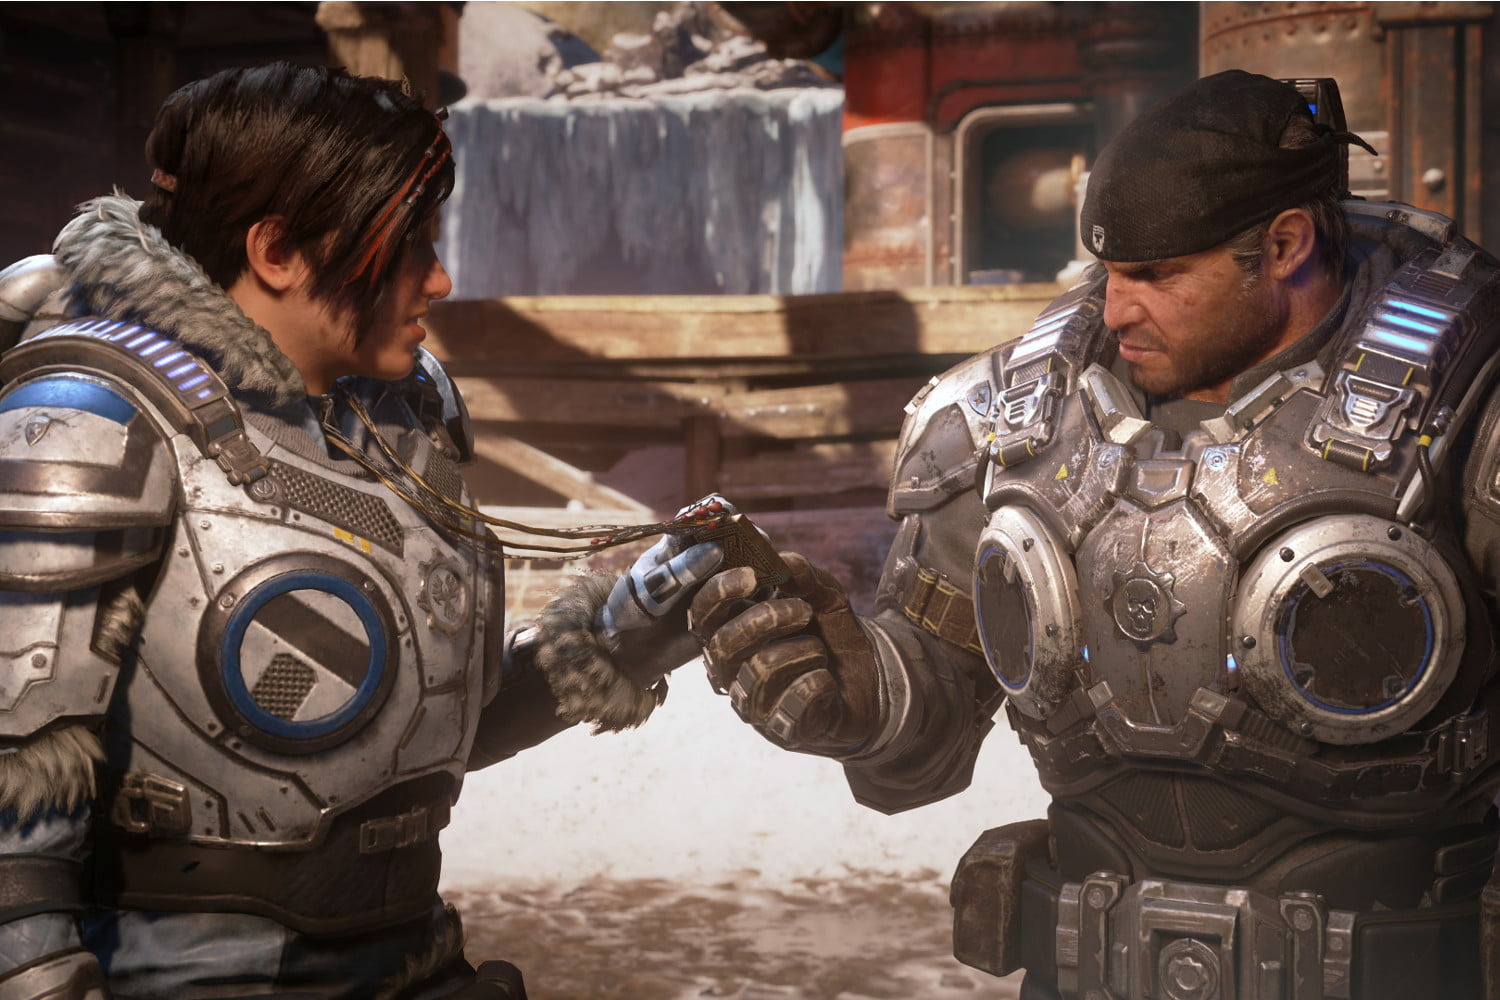 Push back the Swarm menace in Gears 5 with these tips and tricks